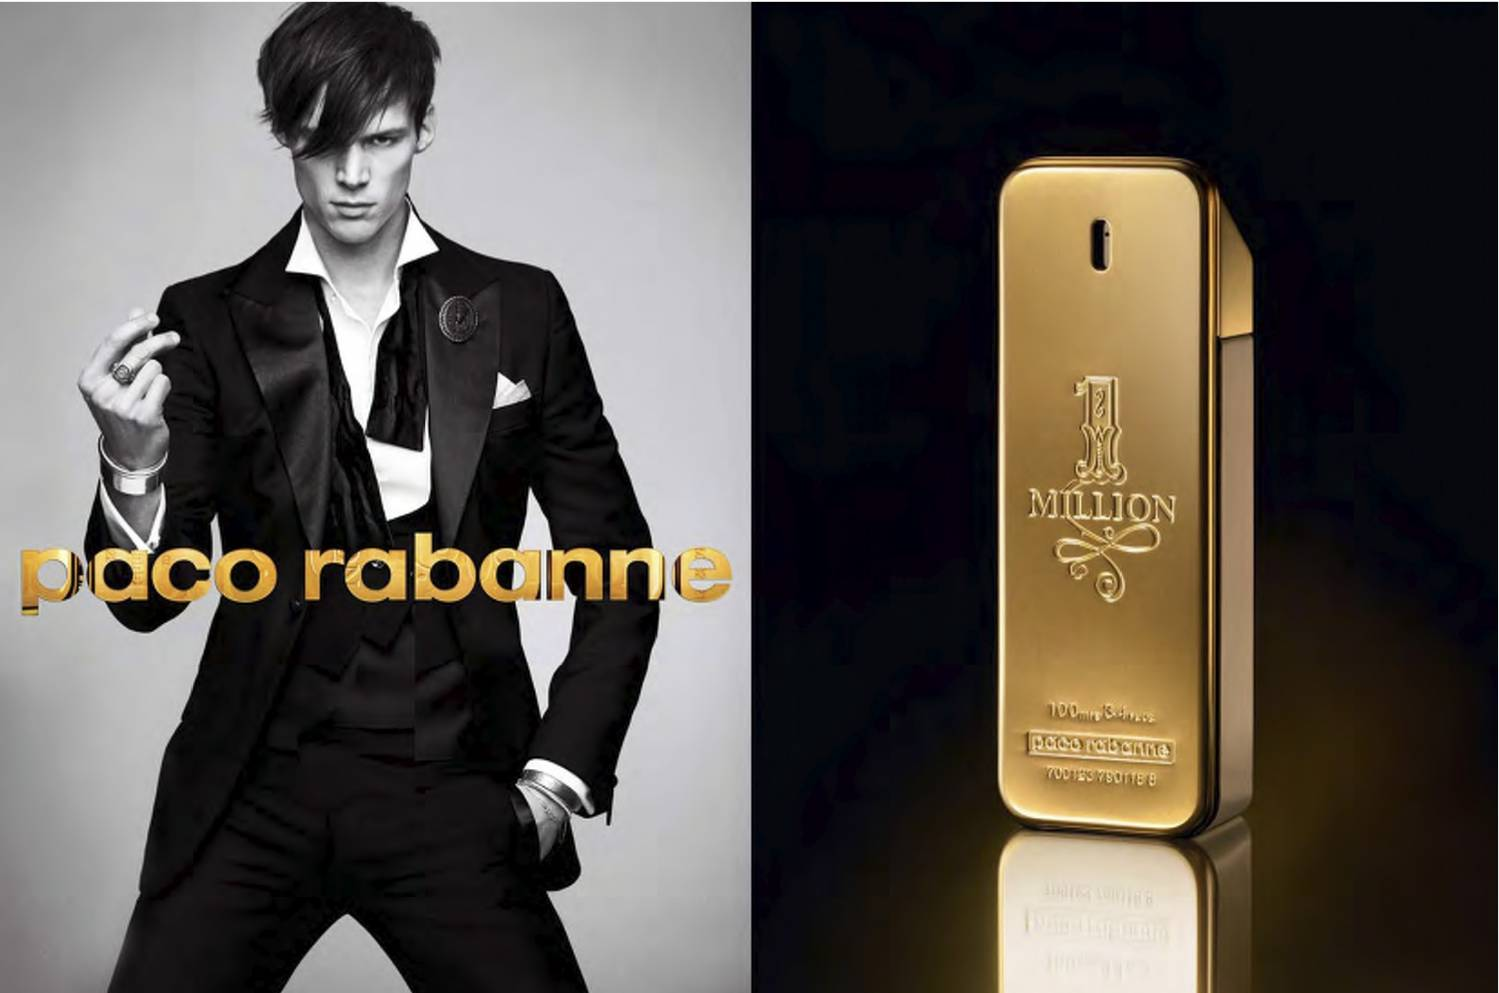 Музыка из рекламы Paco Rabanne - 1 Million Men's (Mat Gordon)